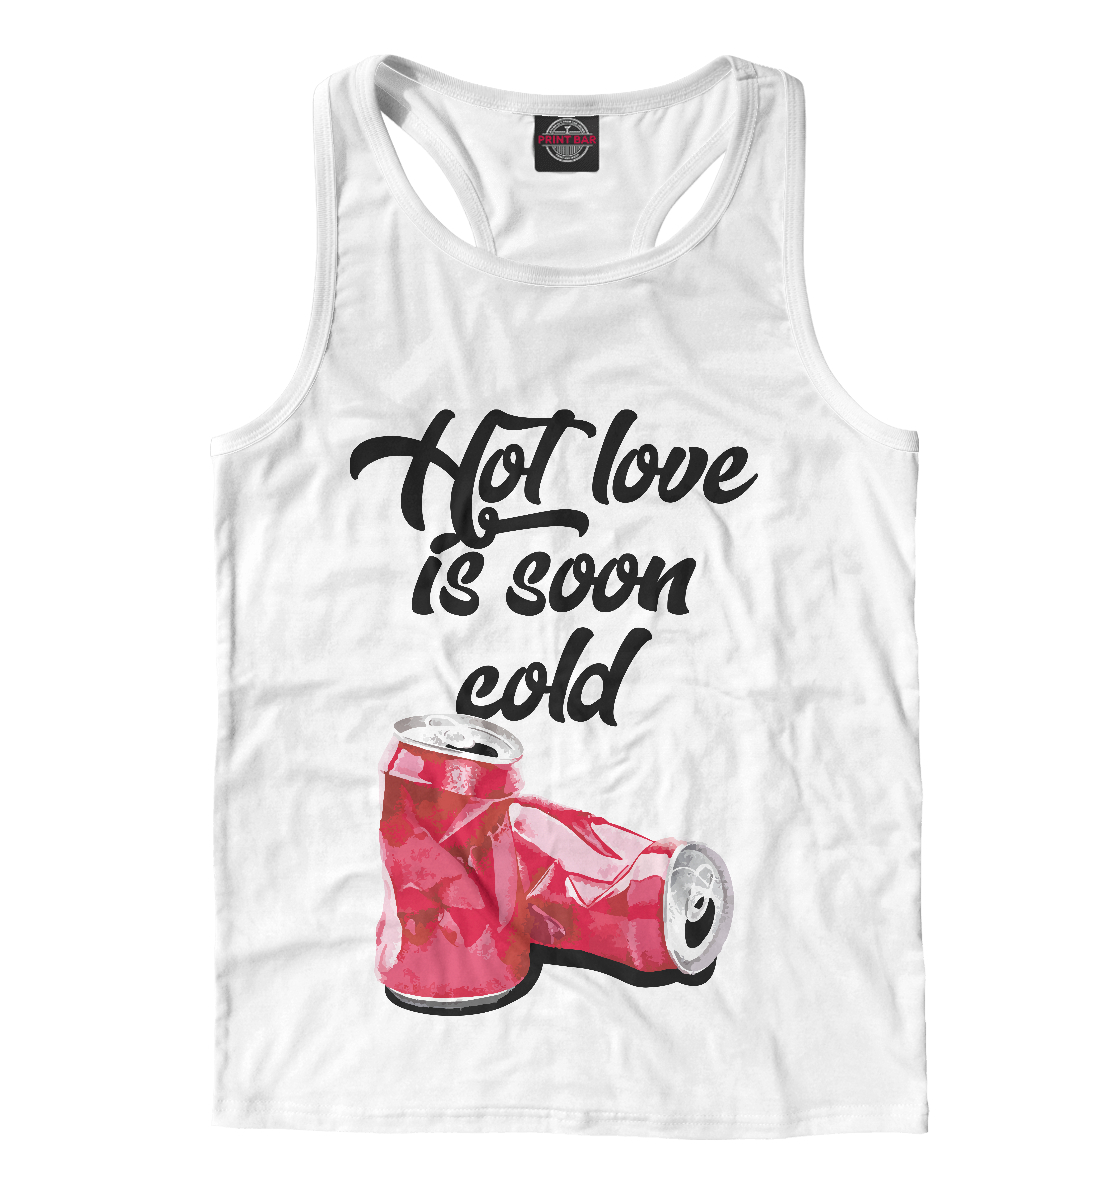 Hot love is soon cold